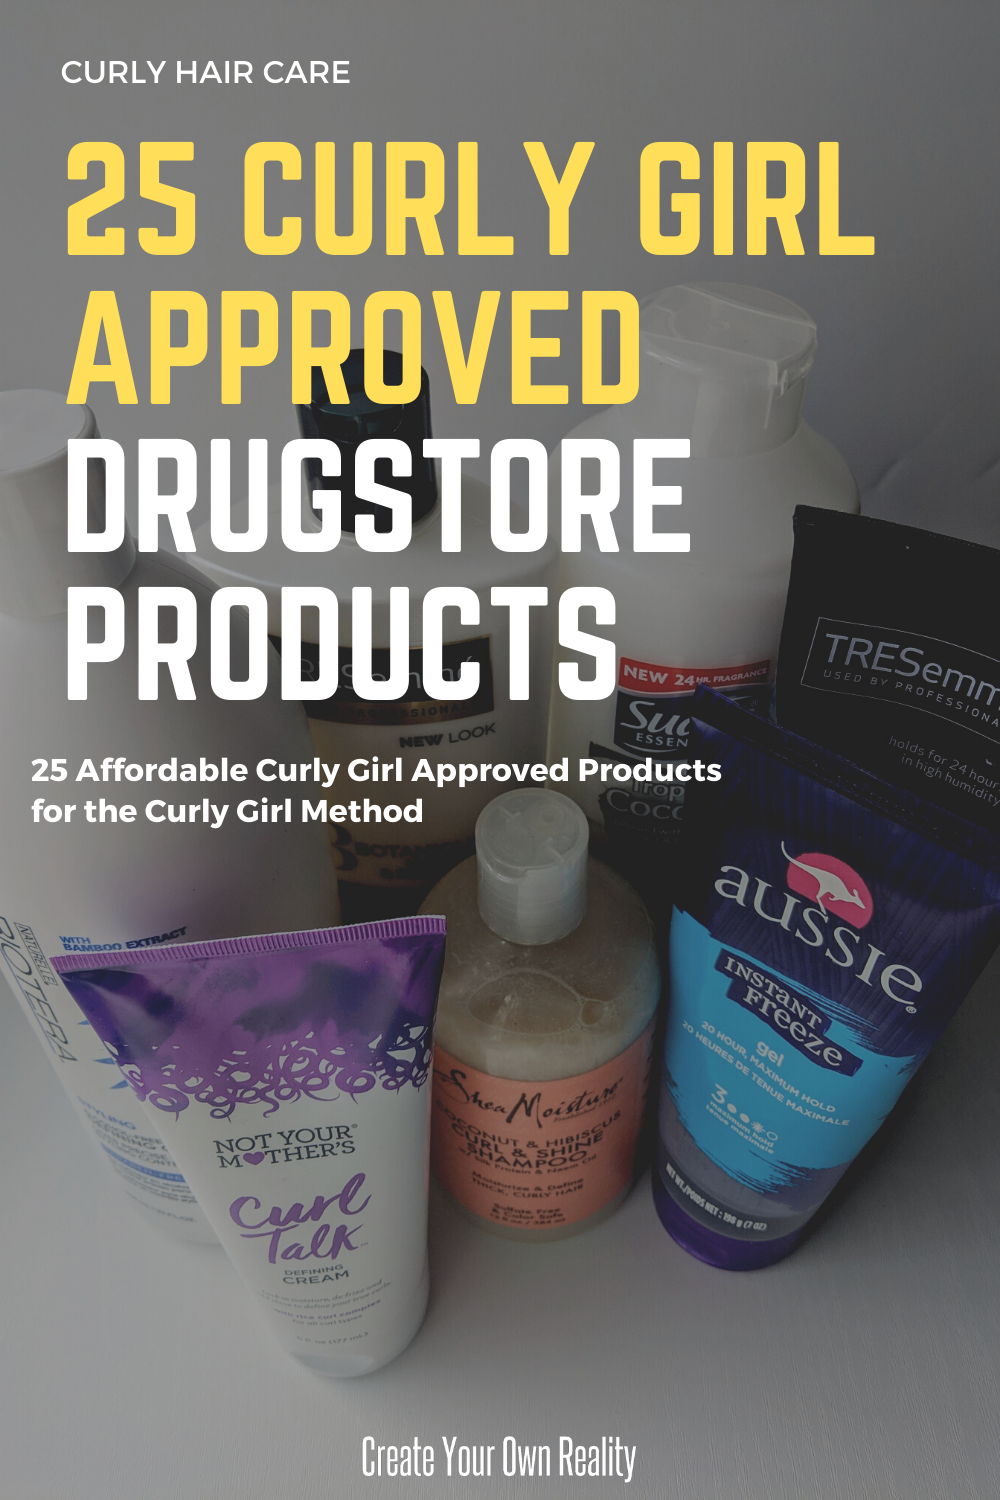 25 Curly Girl Approved Drugstore Products Create Your Own Reality In 2020 Curly Girl Curly Indian Hair Curly Girl Method